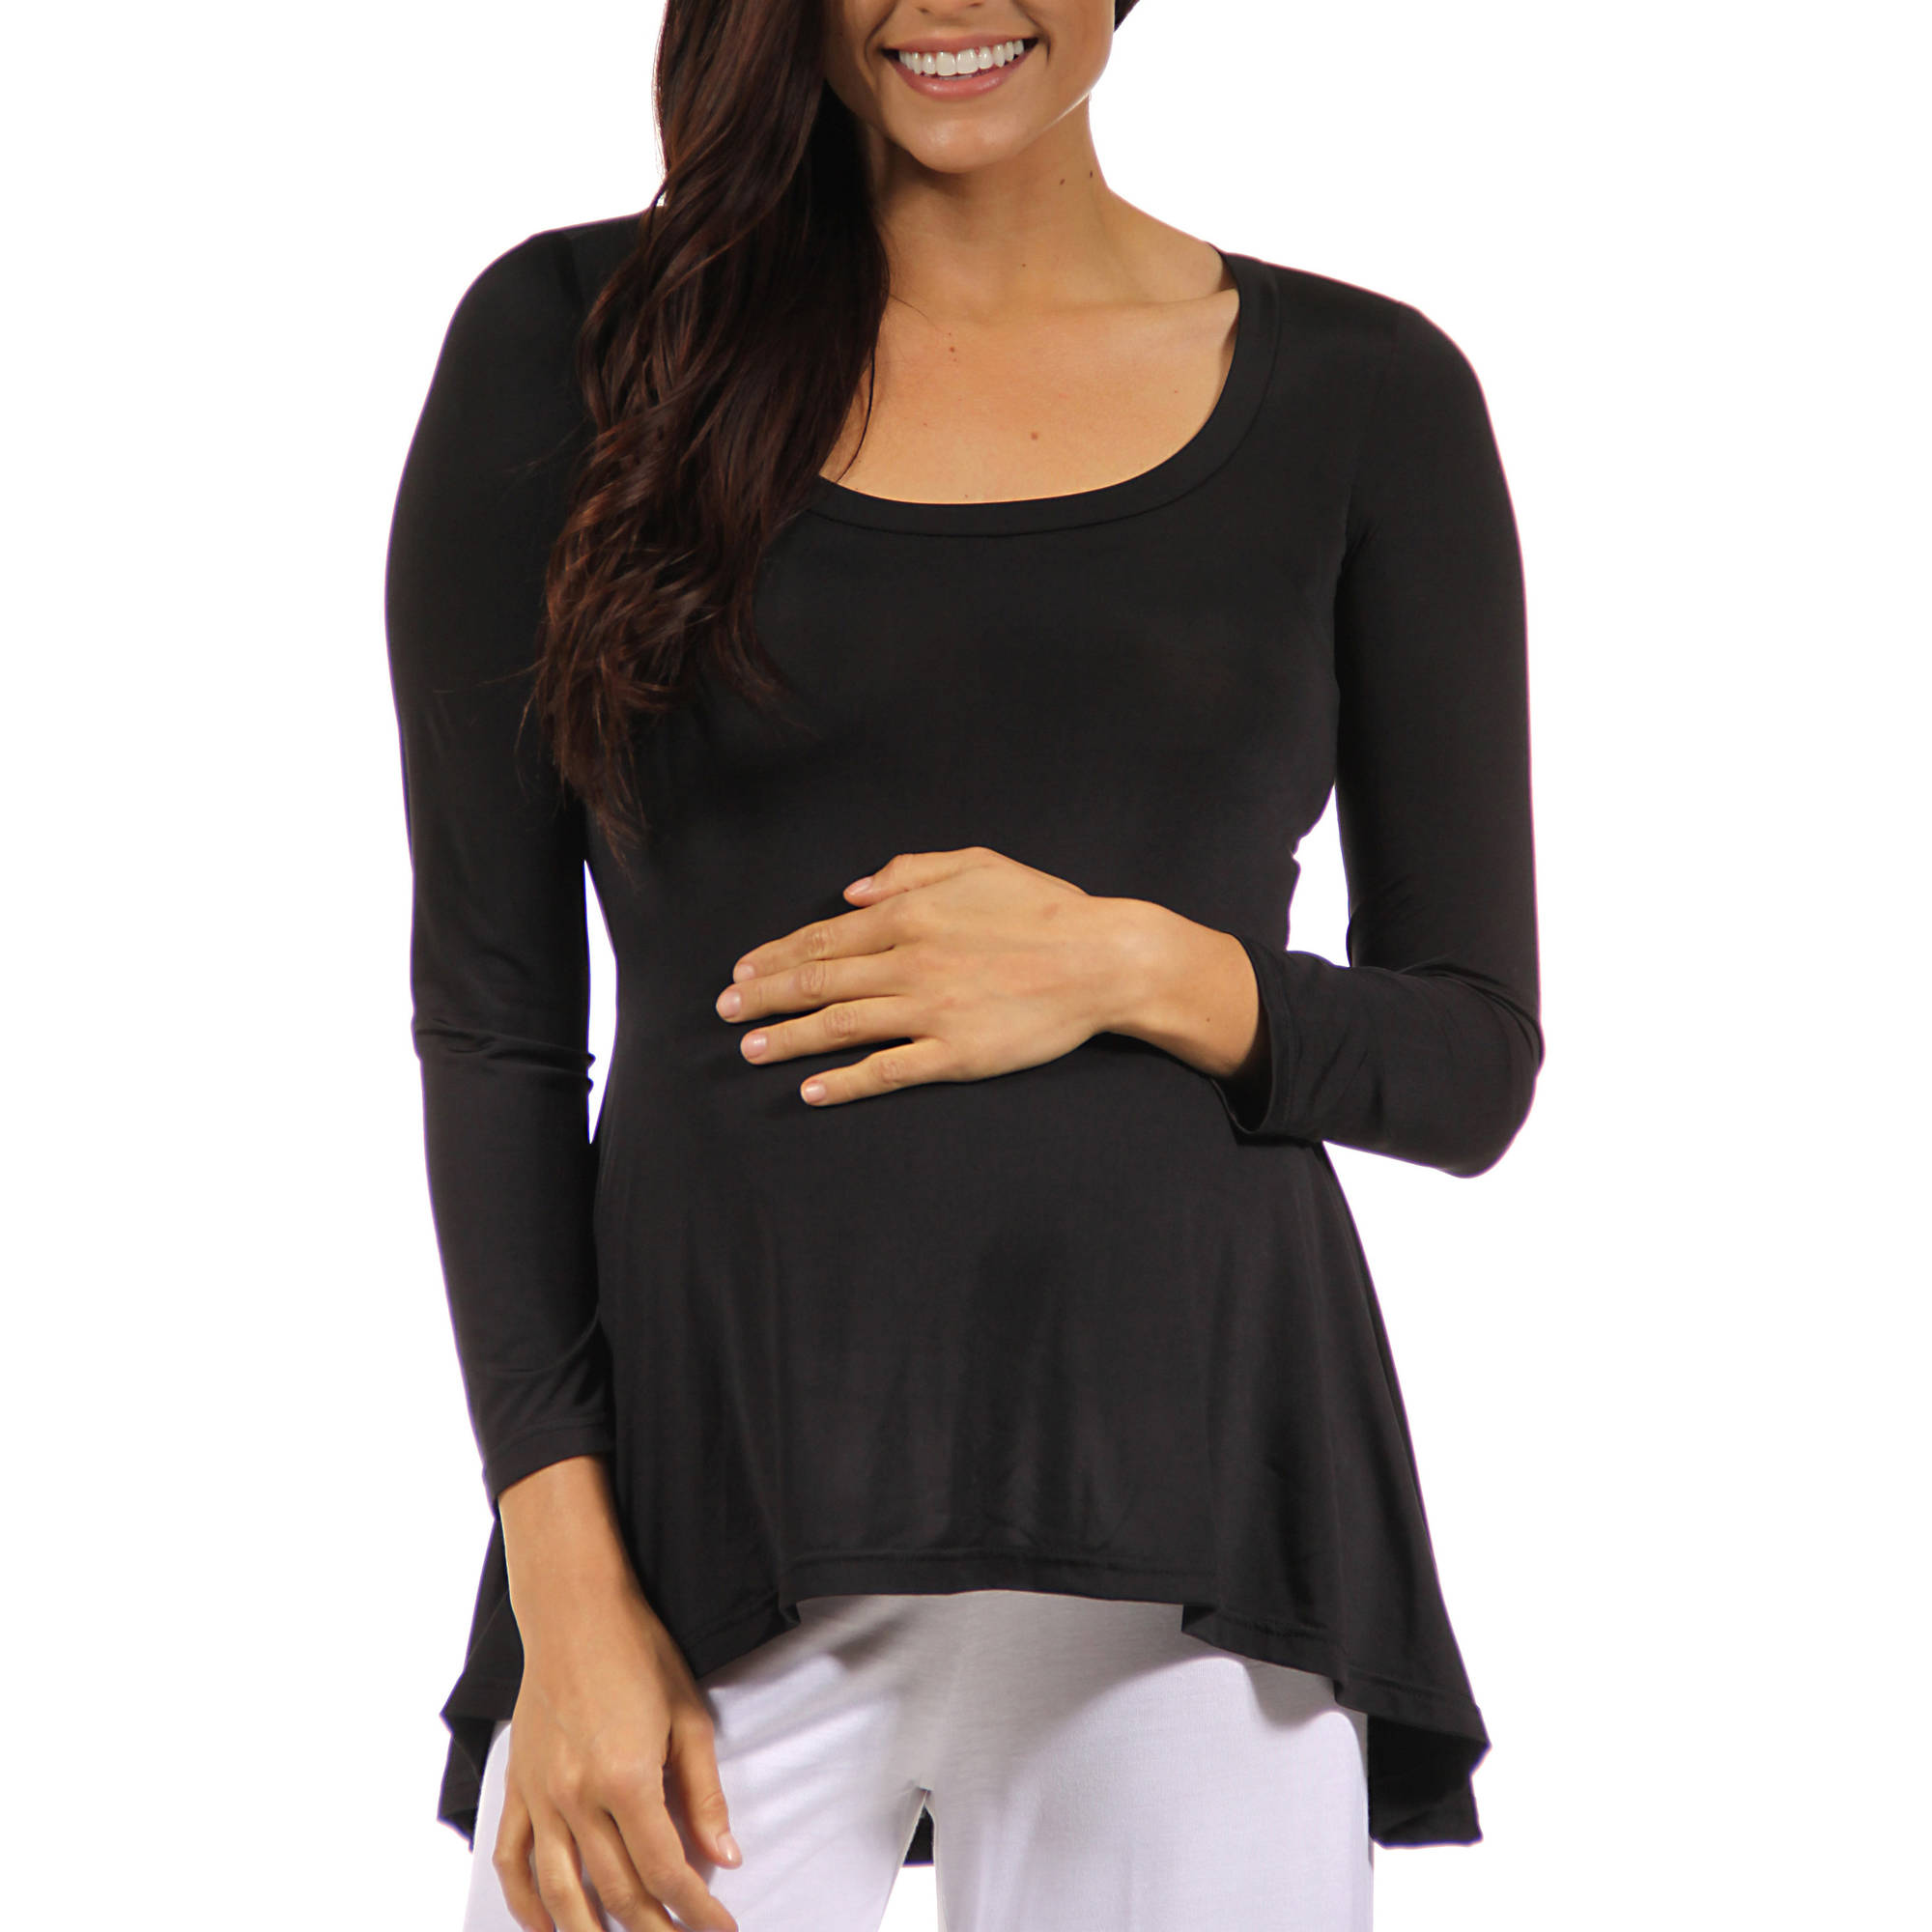 Women's Long Sleeve High-Low Maternity Tunic Top